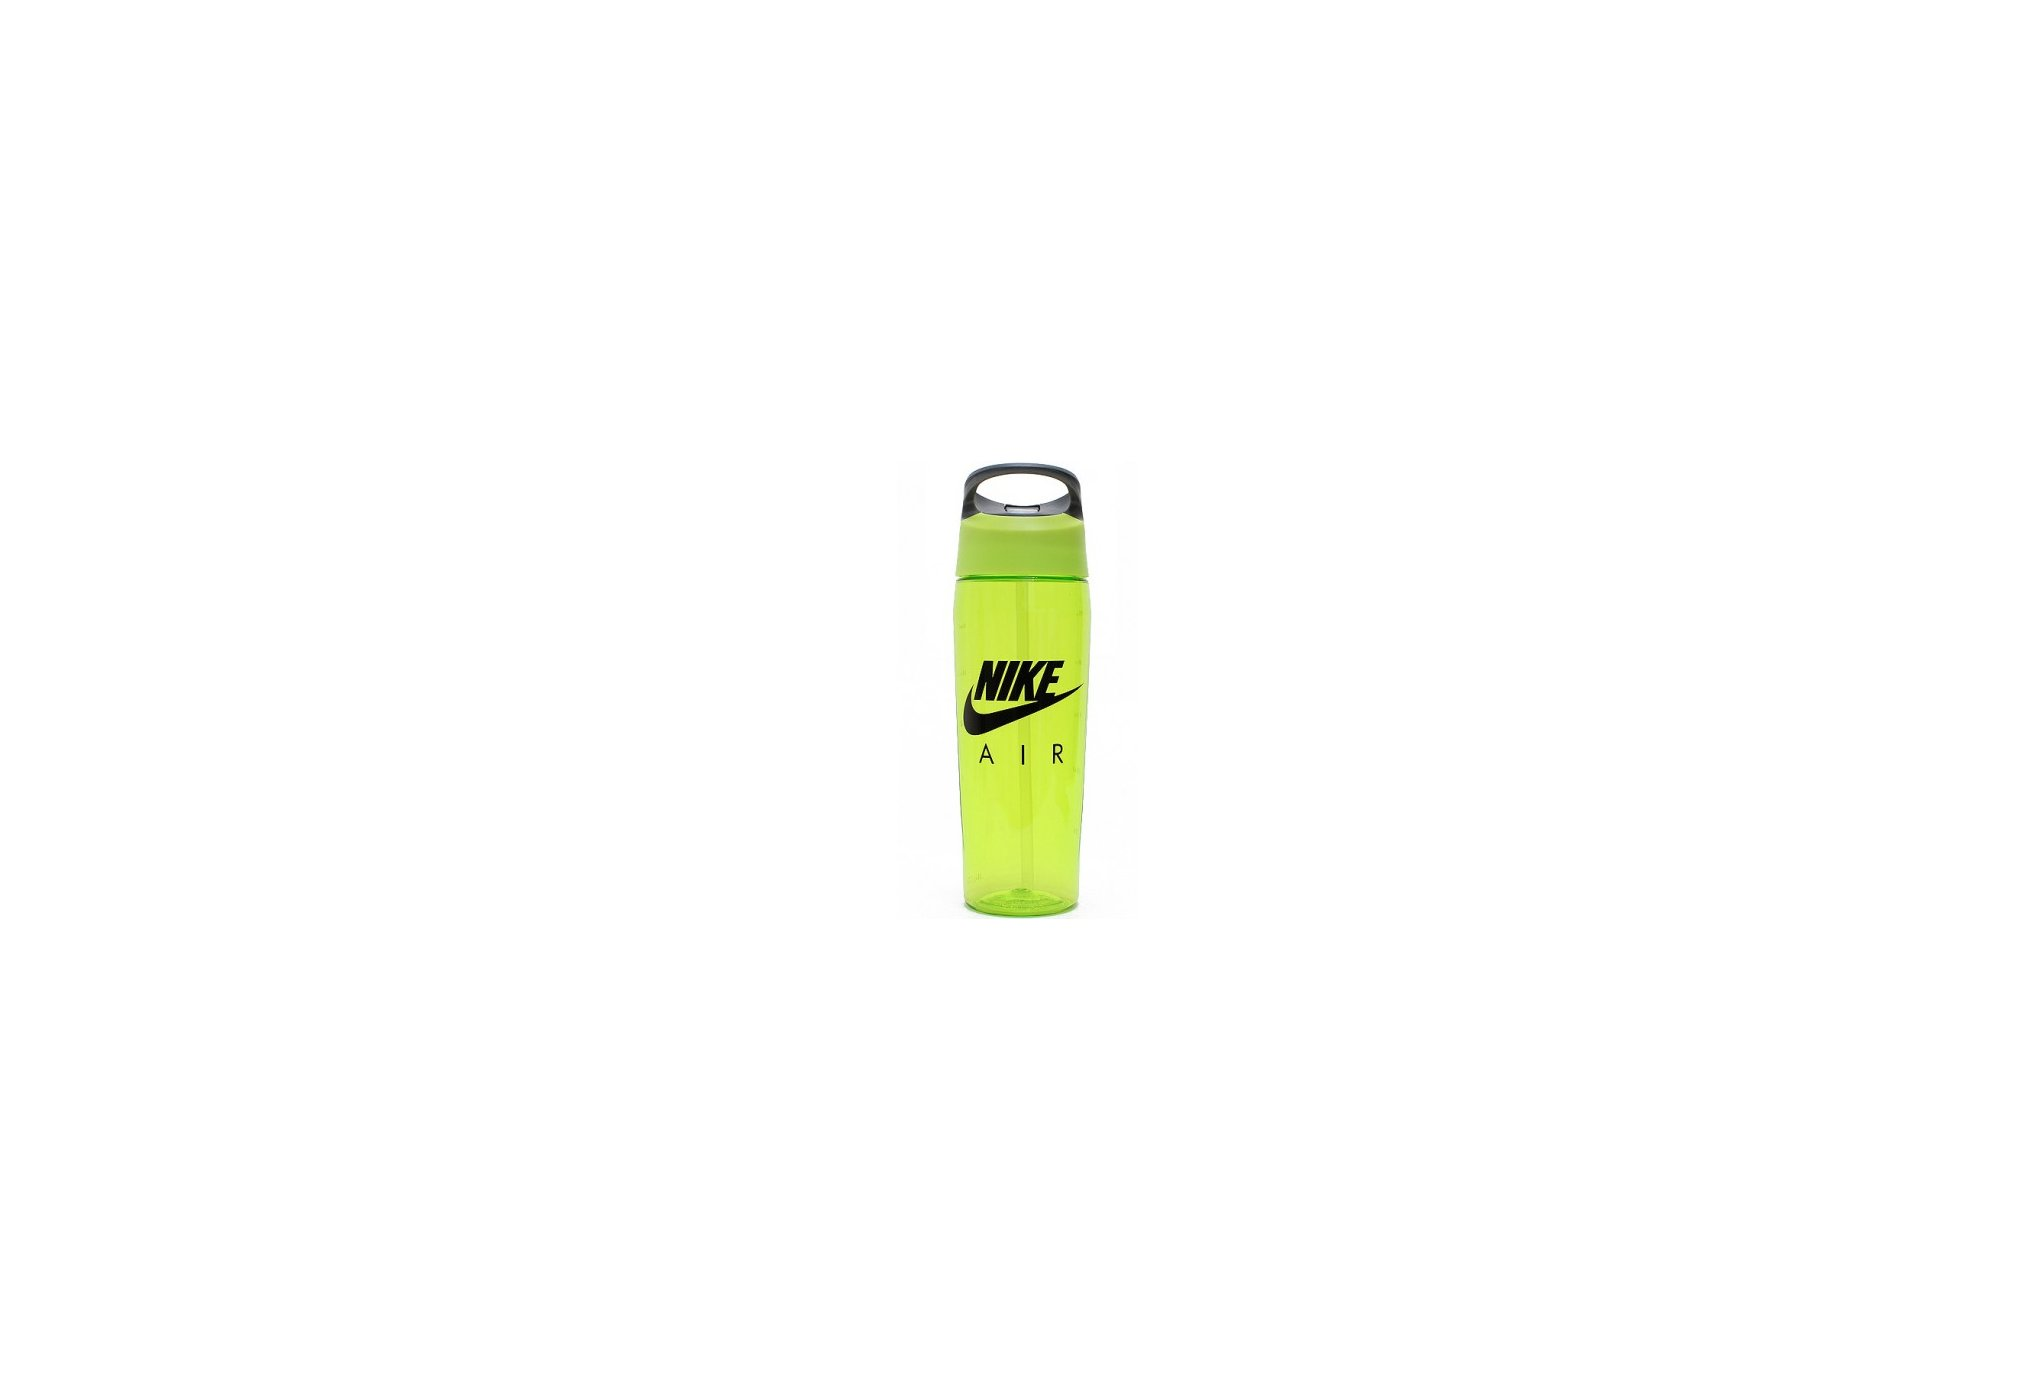 a44b29df55 Trail Session - Nike Air Max 700mL Sac hydratation / Gourde